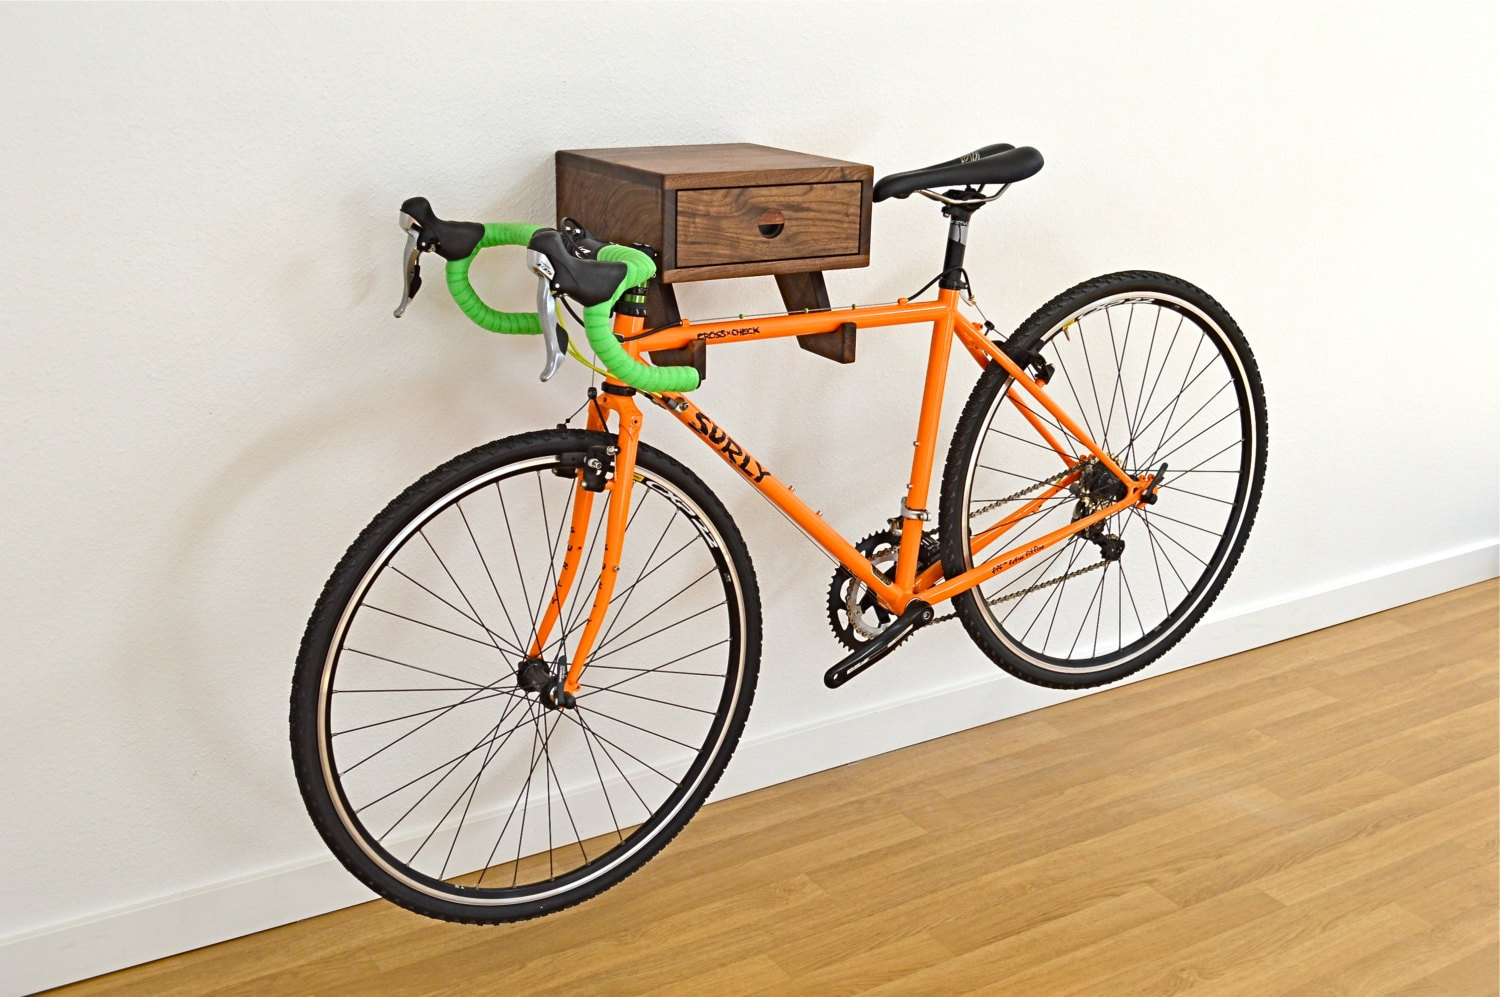 The Clifton Bike Rack Stylish wall mount indoor bike shelf